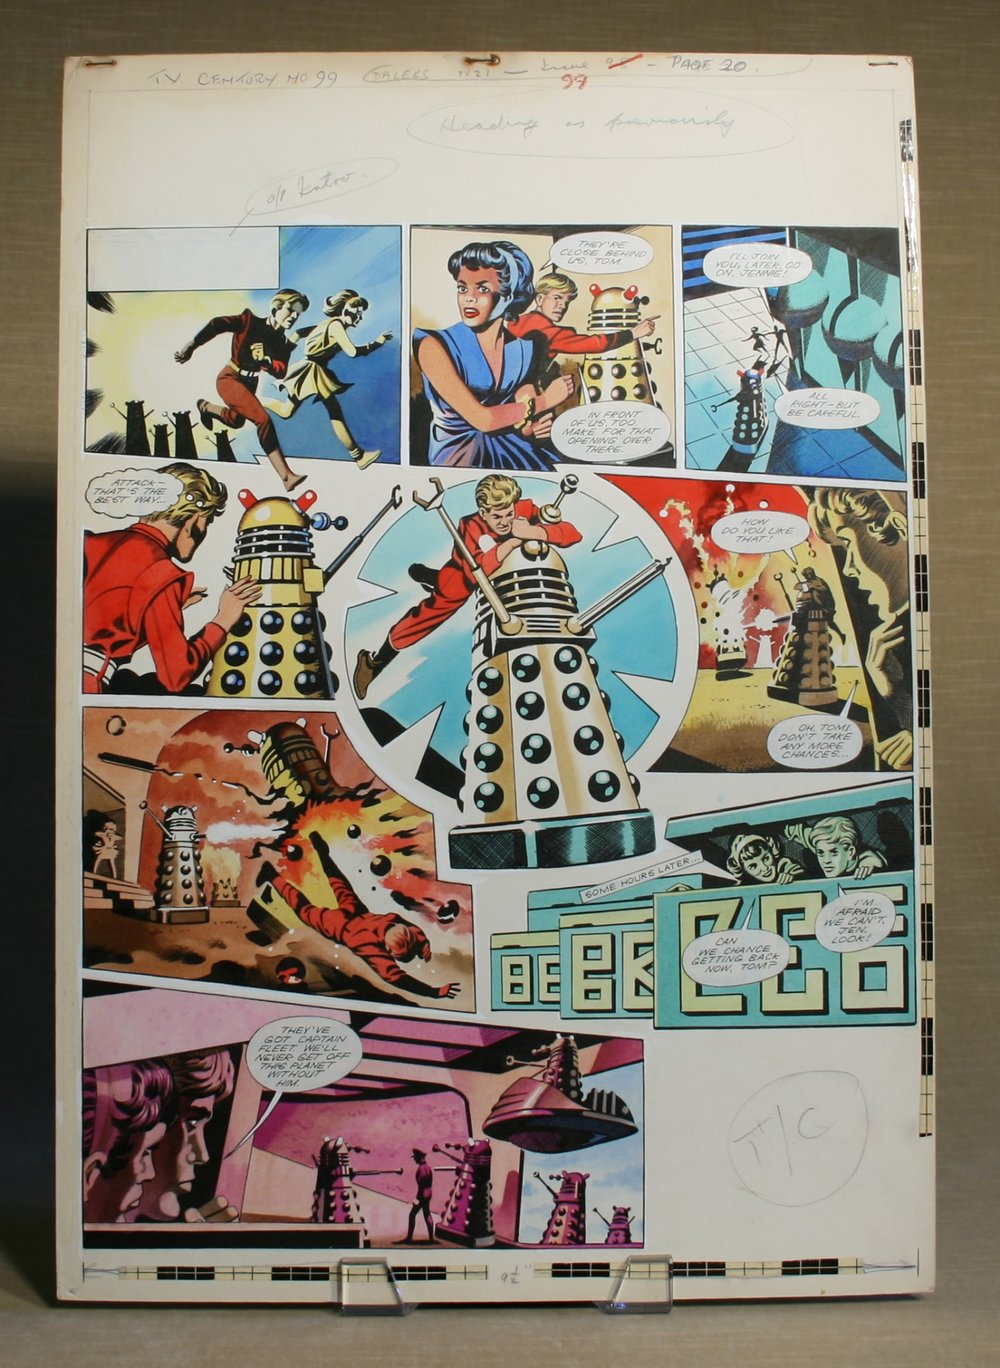 Original artwork for the Dalek strip in TV Century 21, no. 99